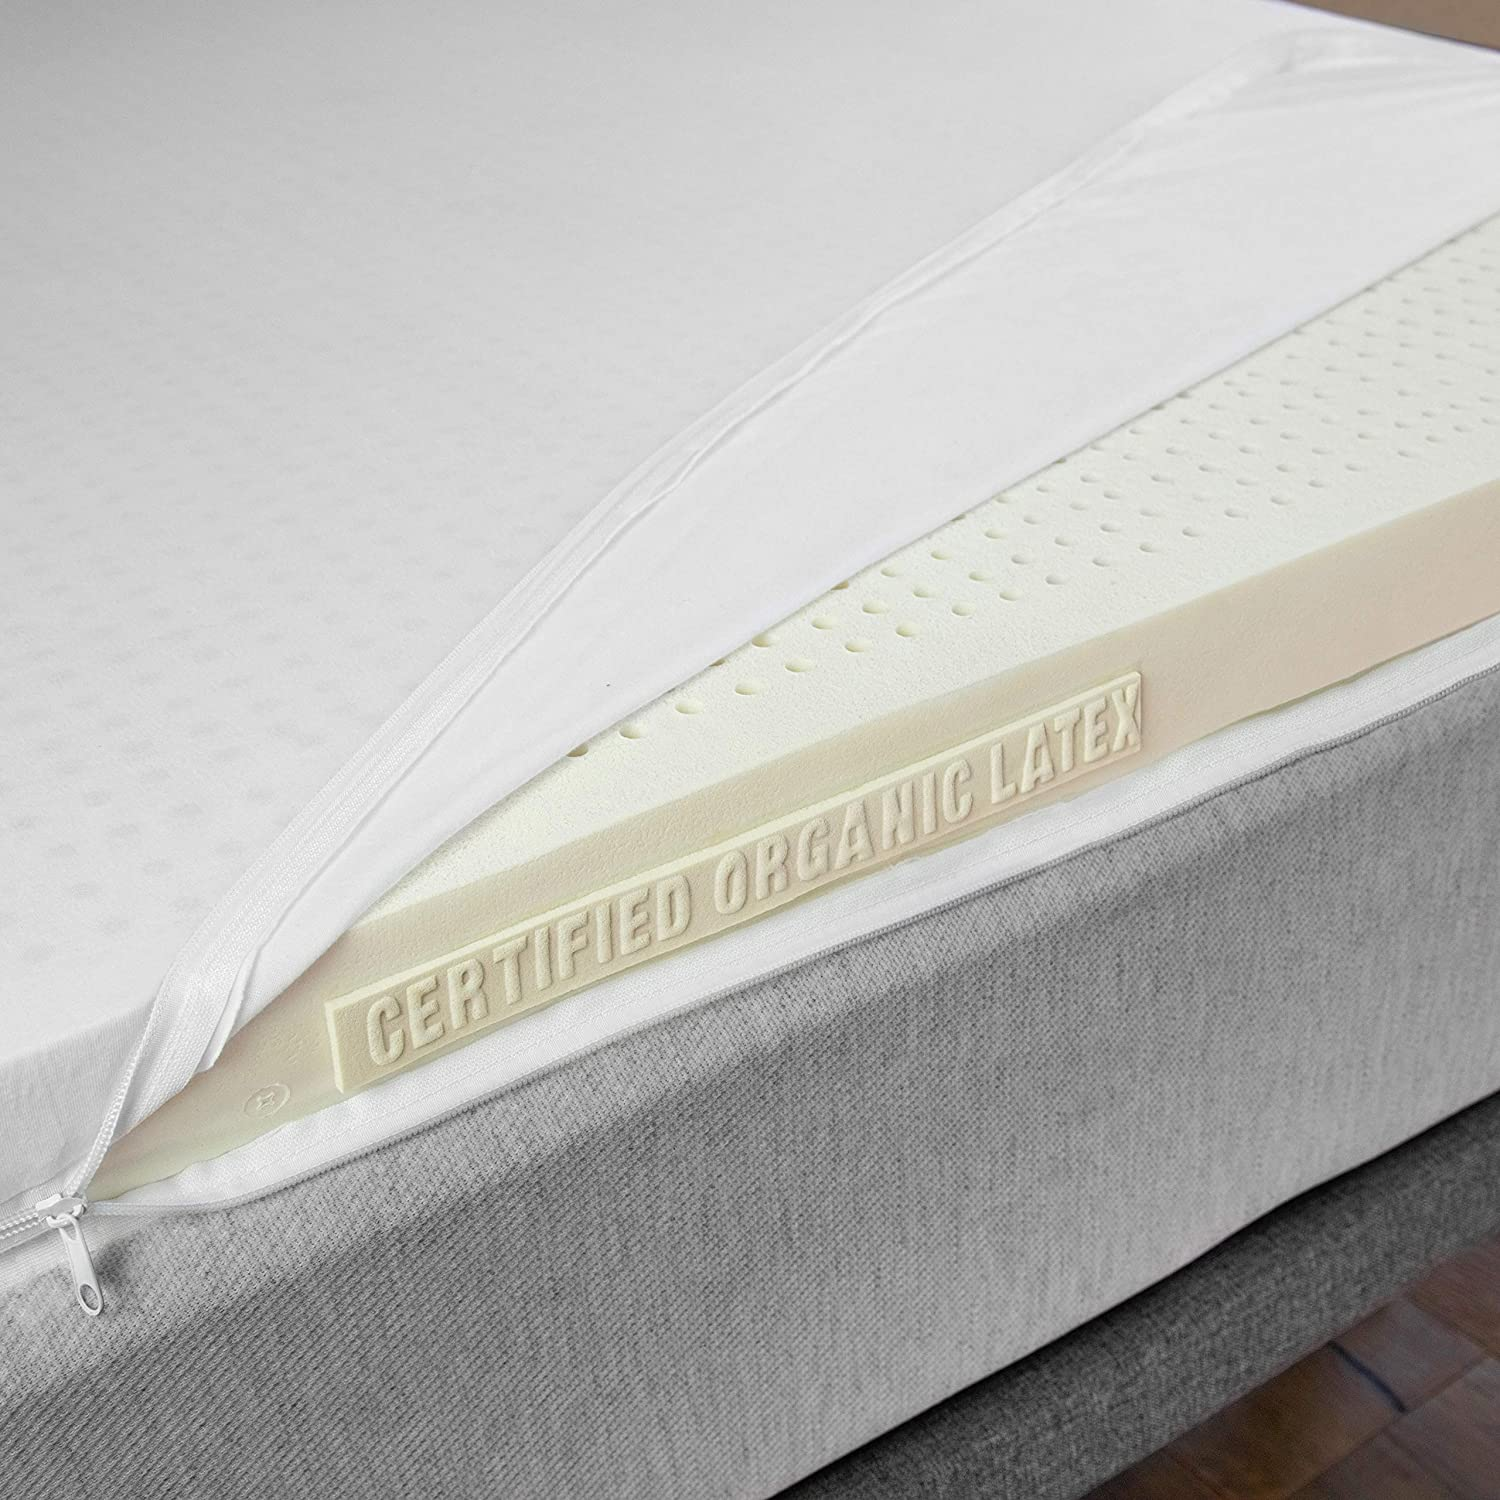 Certified Organic 100 Natural Latex Mattress Topper – Firm – 2 Inch – Queen Size – Organic Cotton Cover Included.